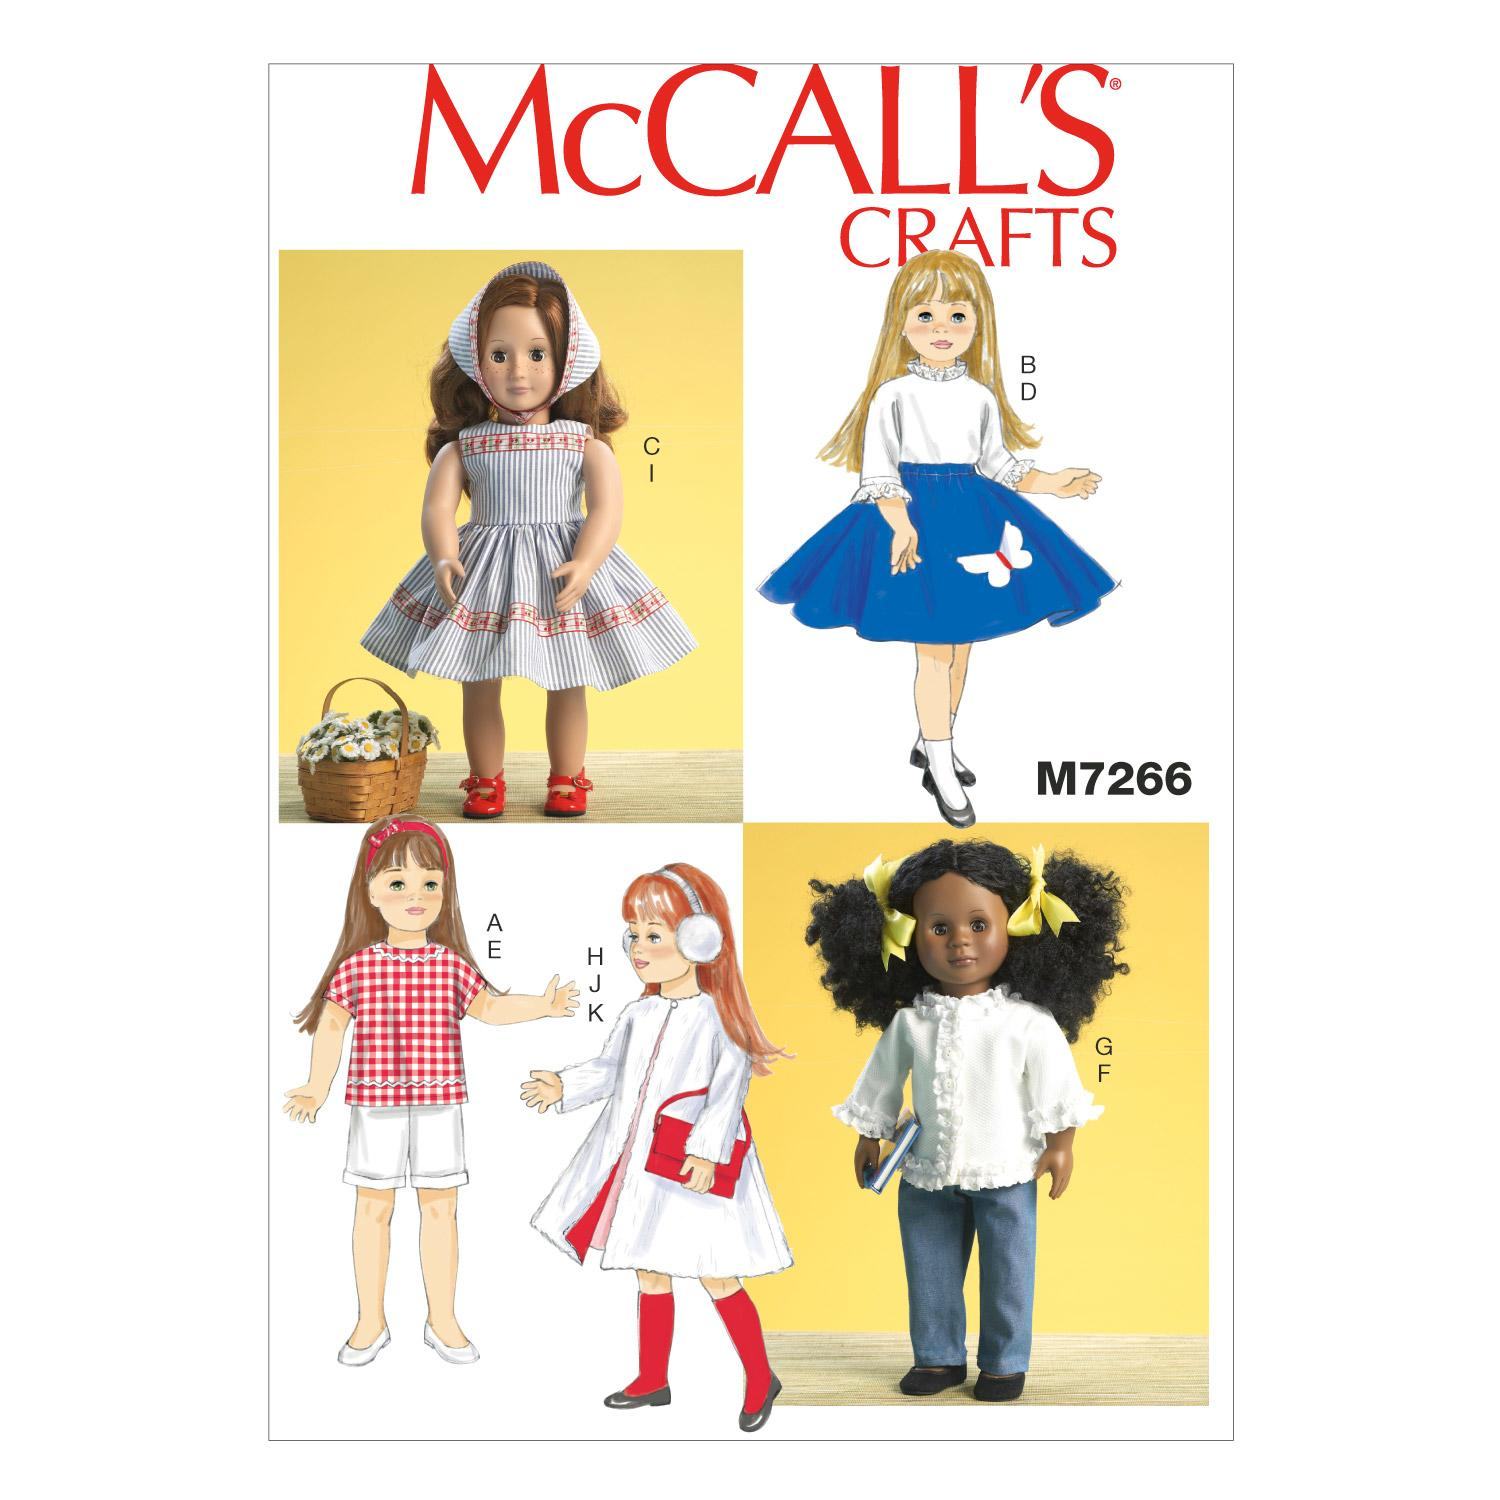 McCalls M7266 Crafts/Dolls/Pets